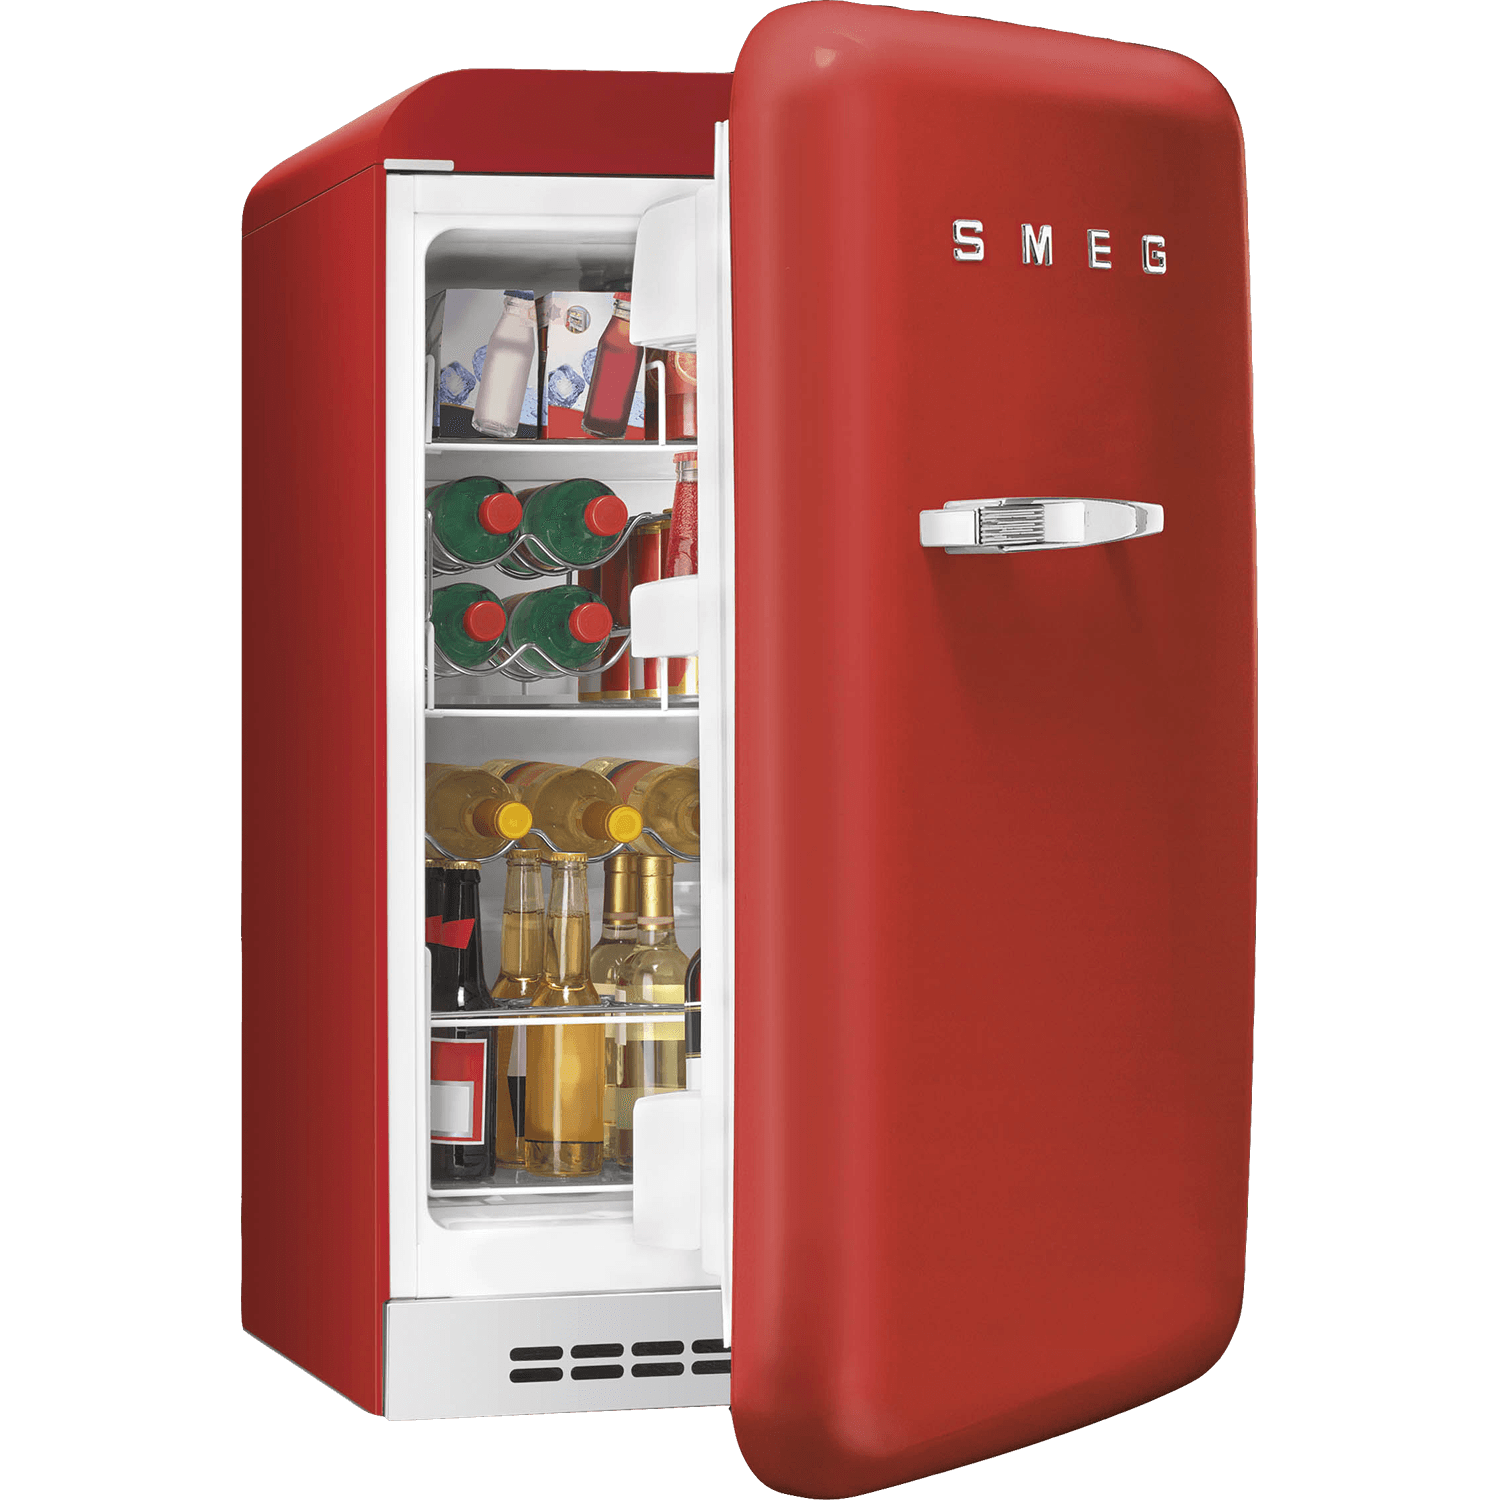 Transparent fridge red. Vintage refrigerator png stickpng